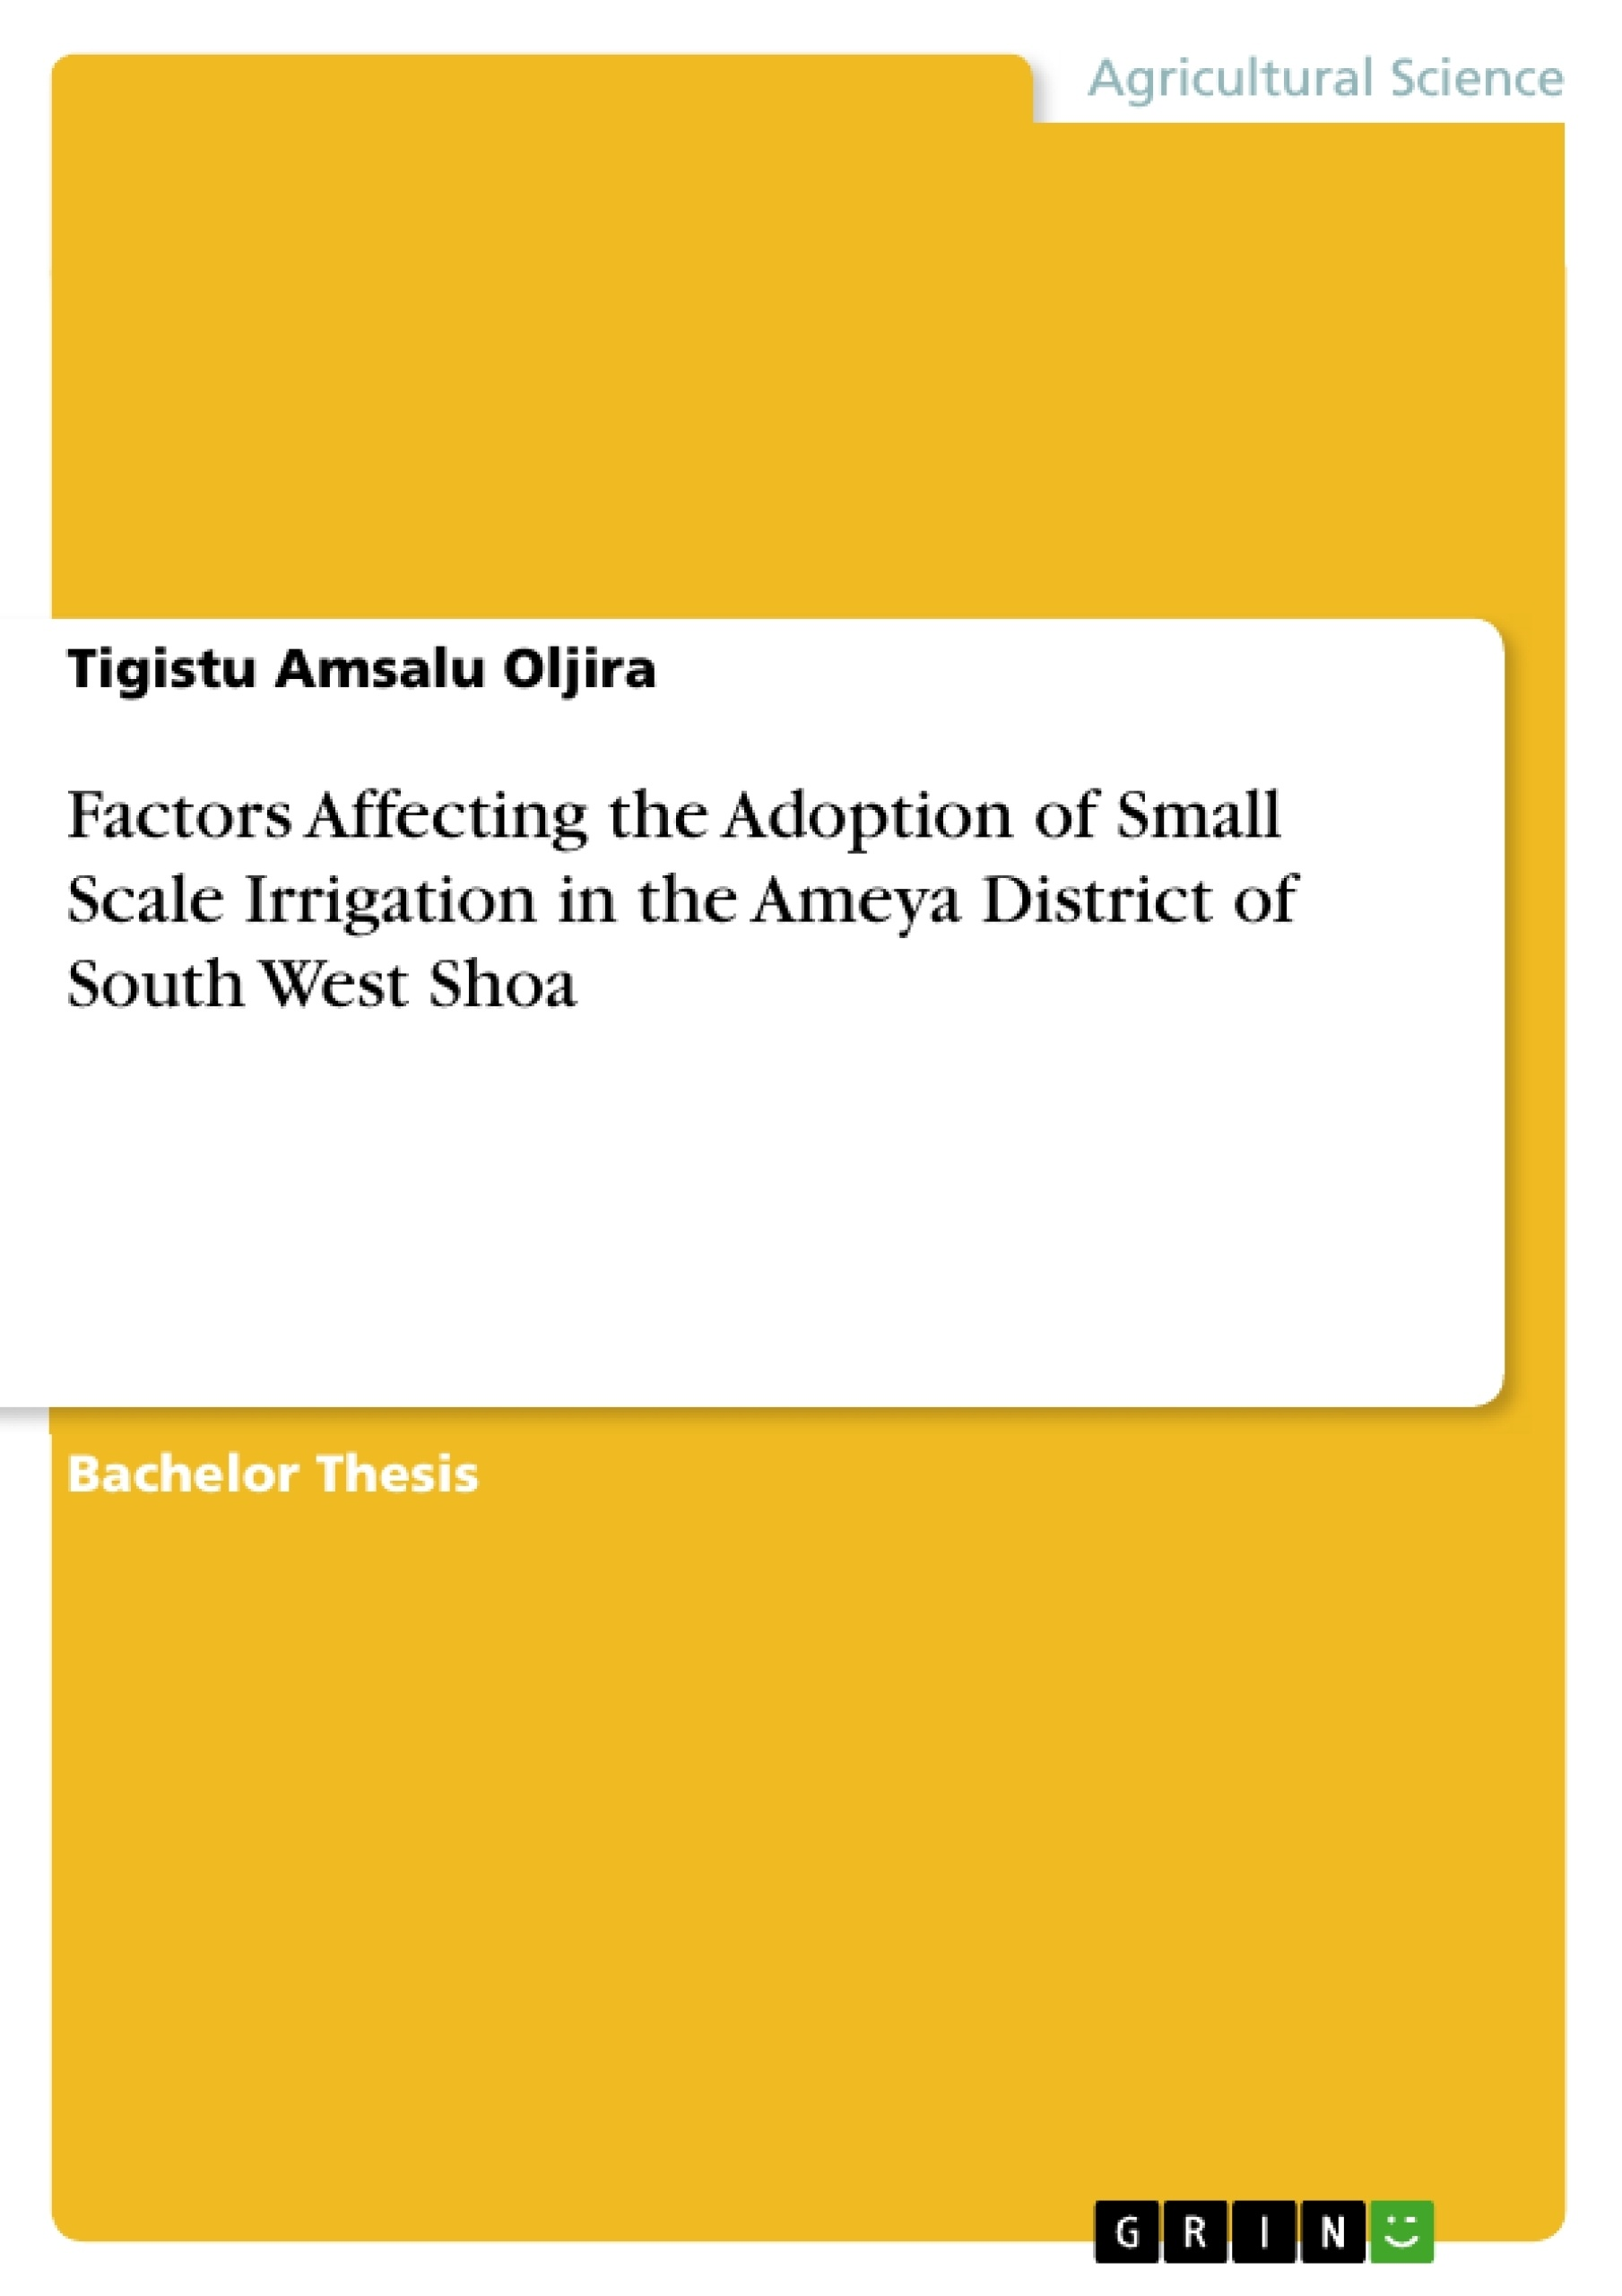 Title: Factors Affecting the Adoption of Small Scale Irrigation in the Ameya District of South West Shoa